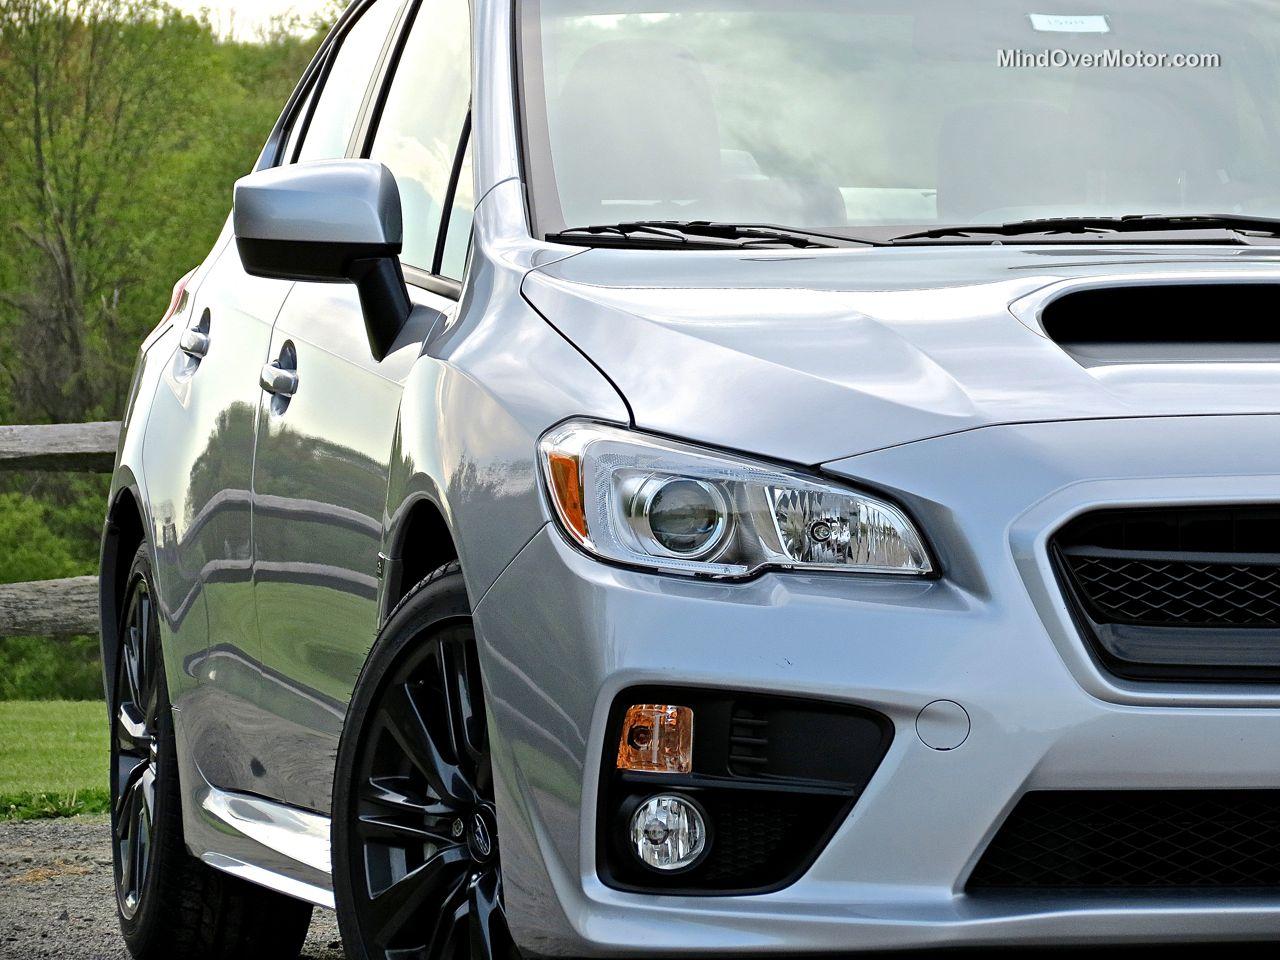 2015 Subaru WRX head lights